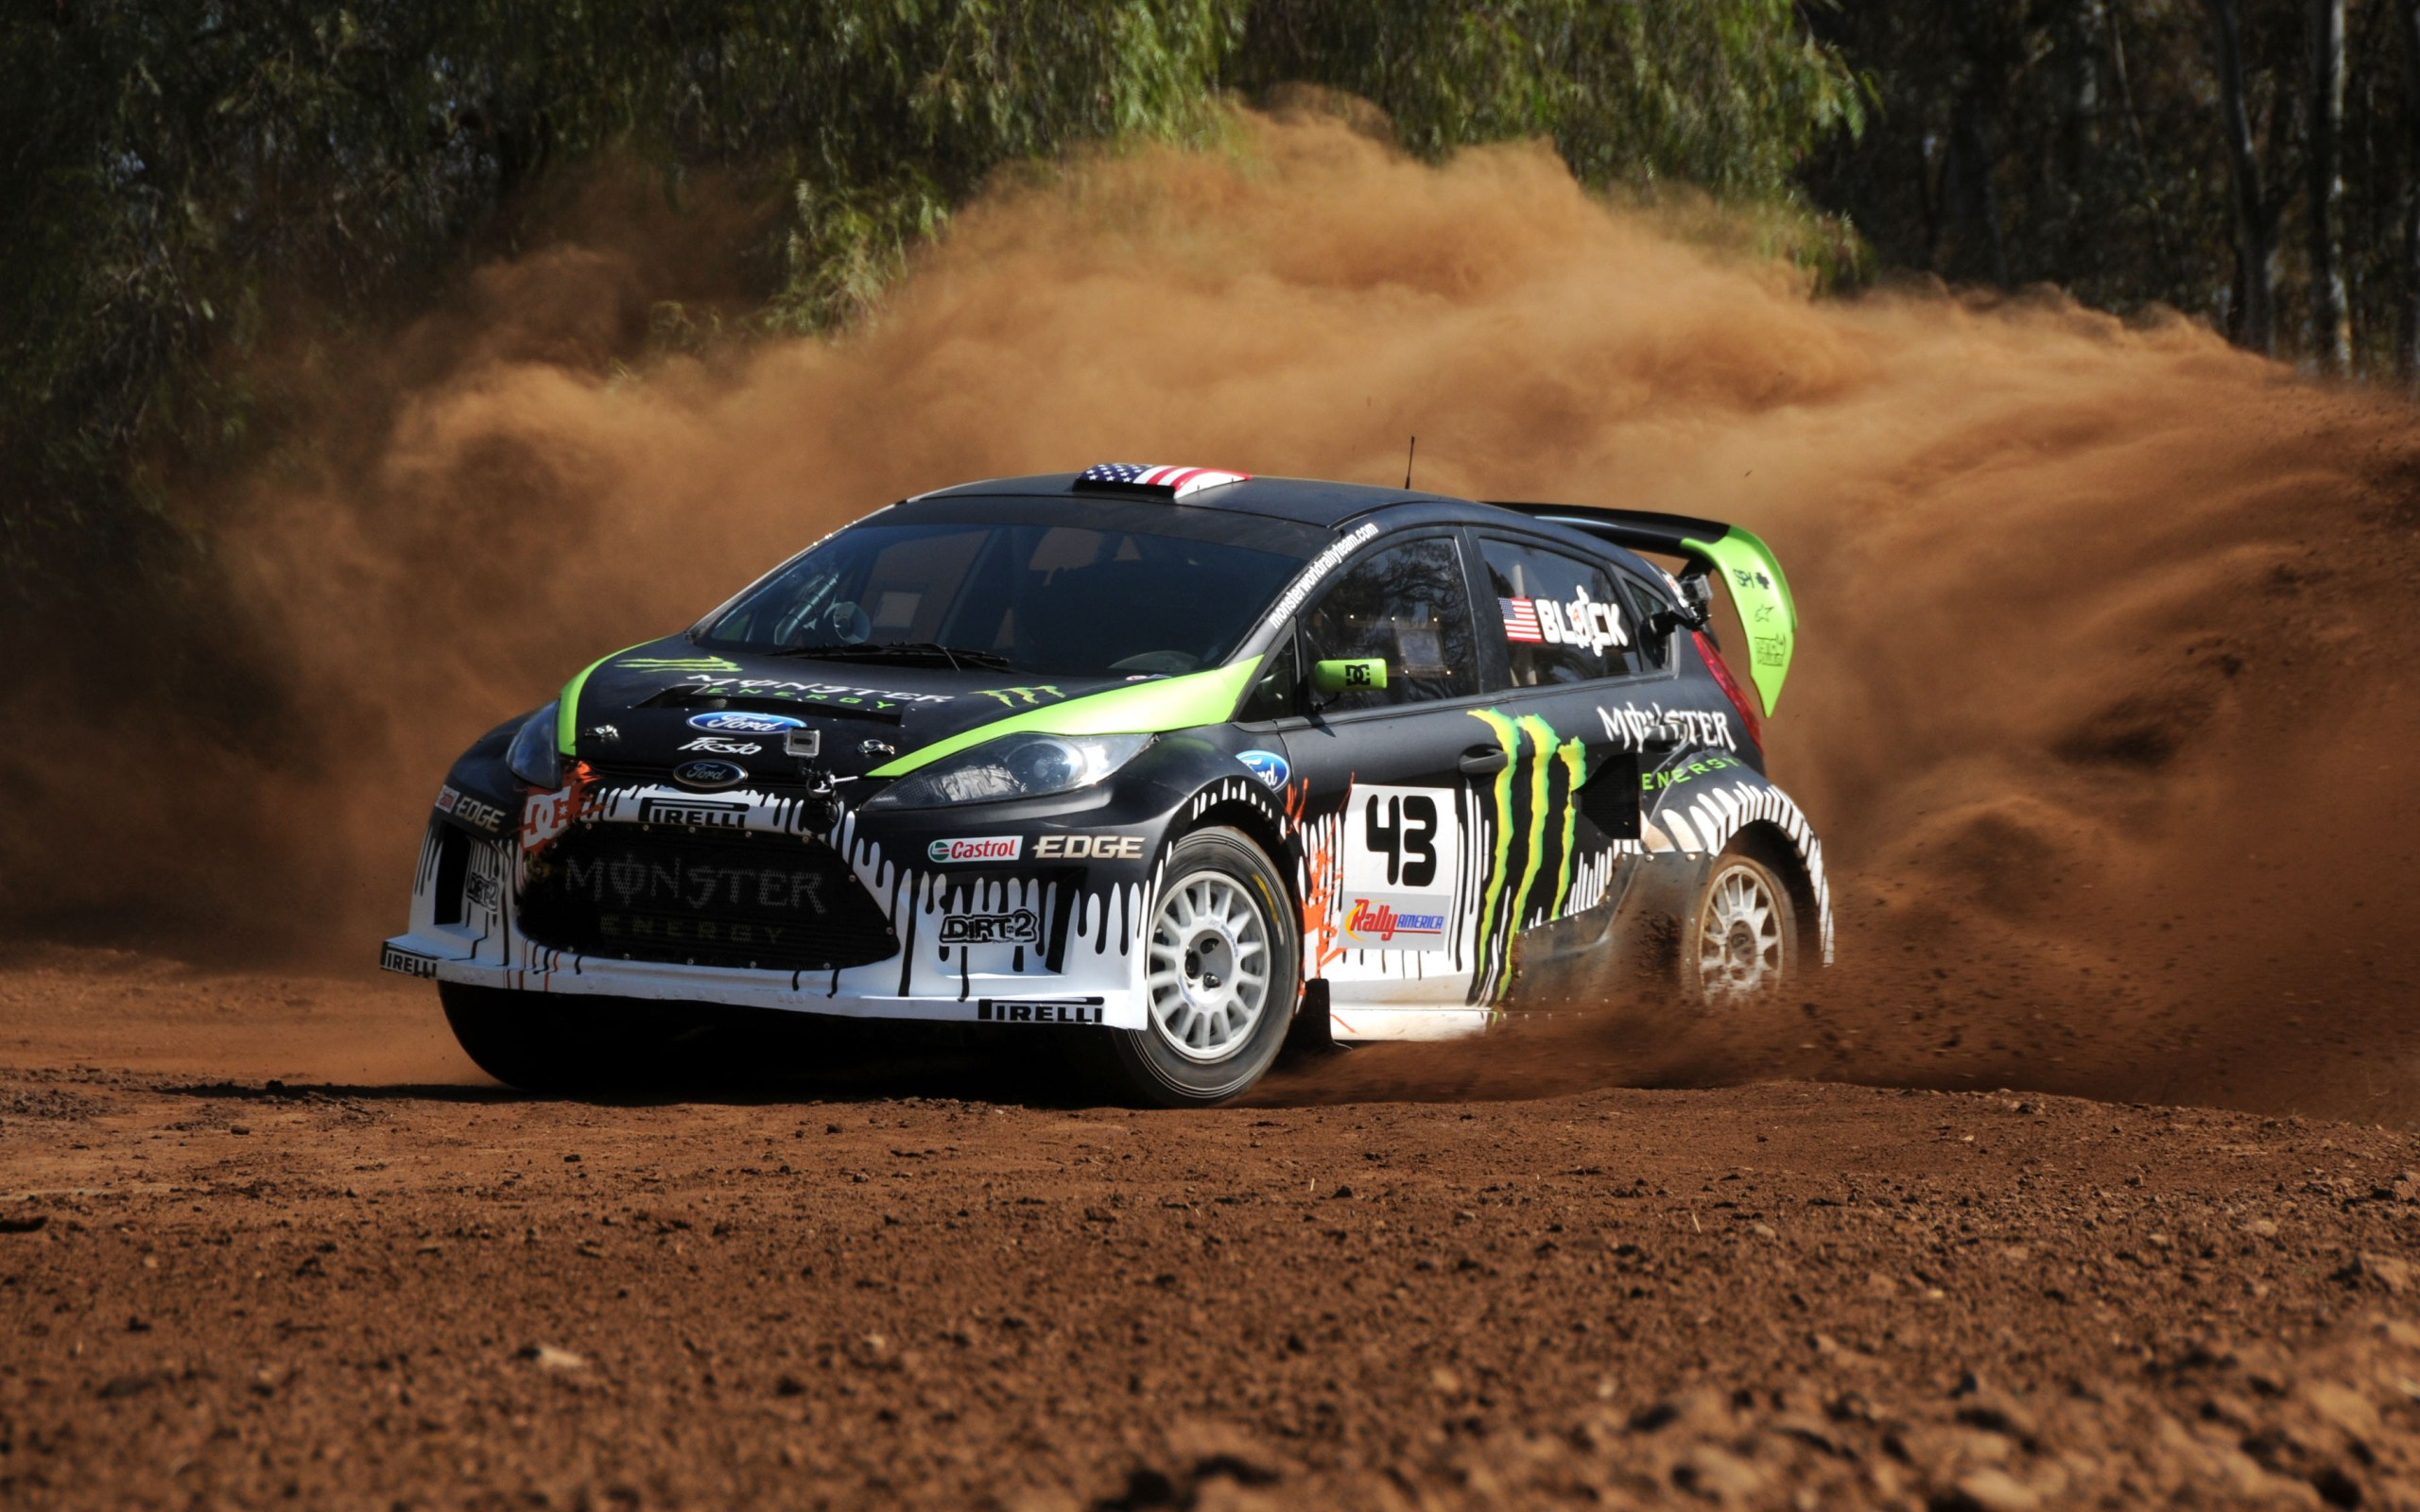 Cars rally ford focus rally car wallpaper  2560x1600  16137